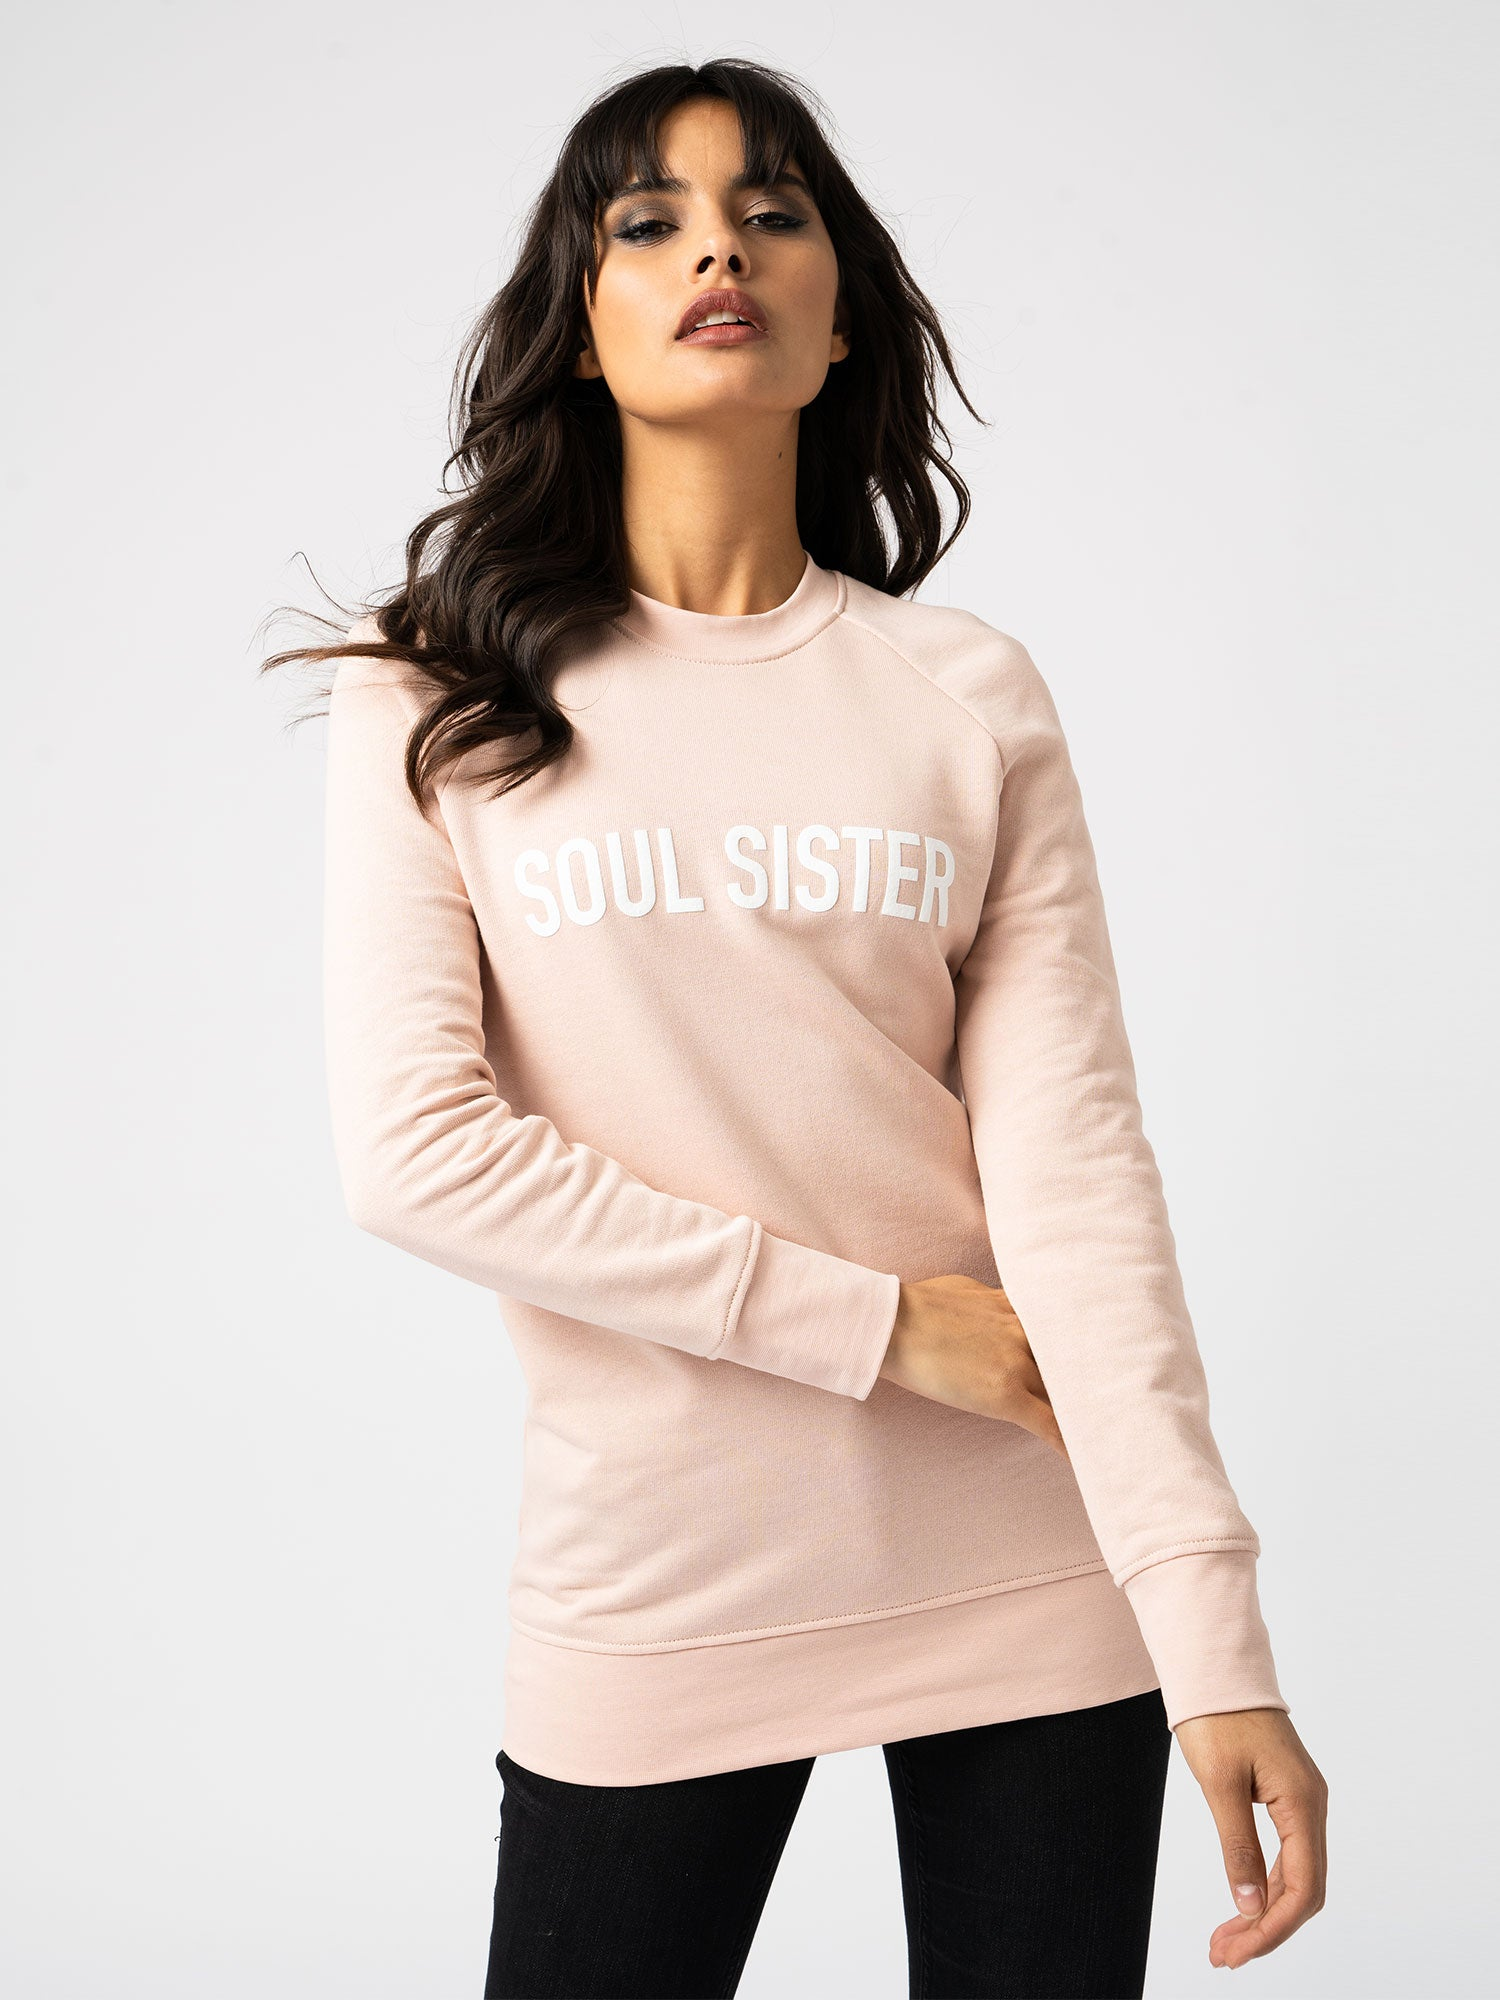 Soul Sister Sweater Pink